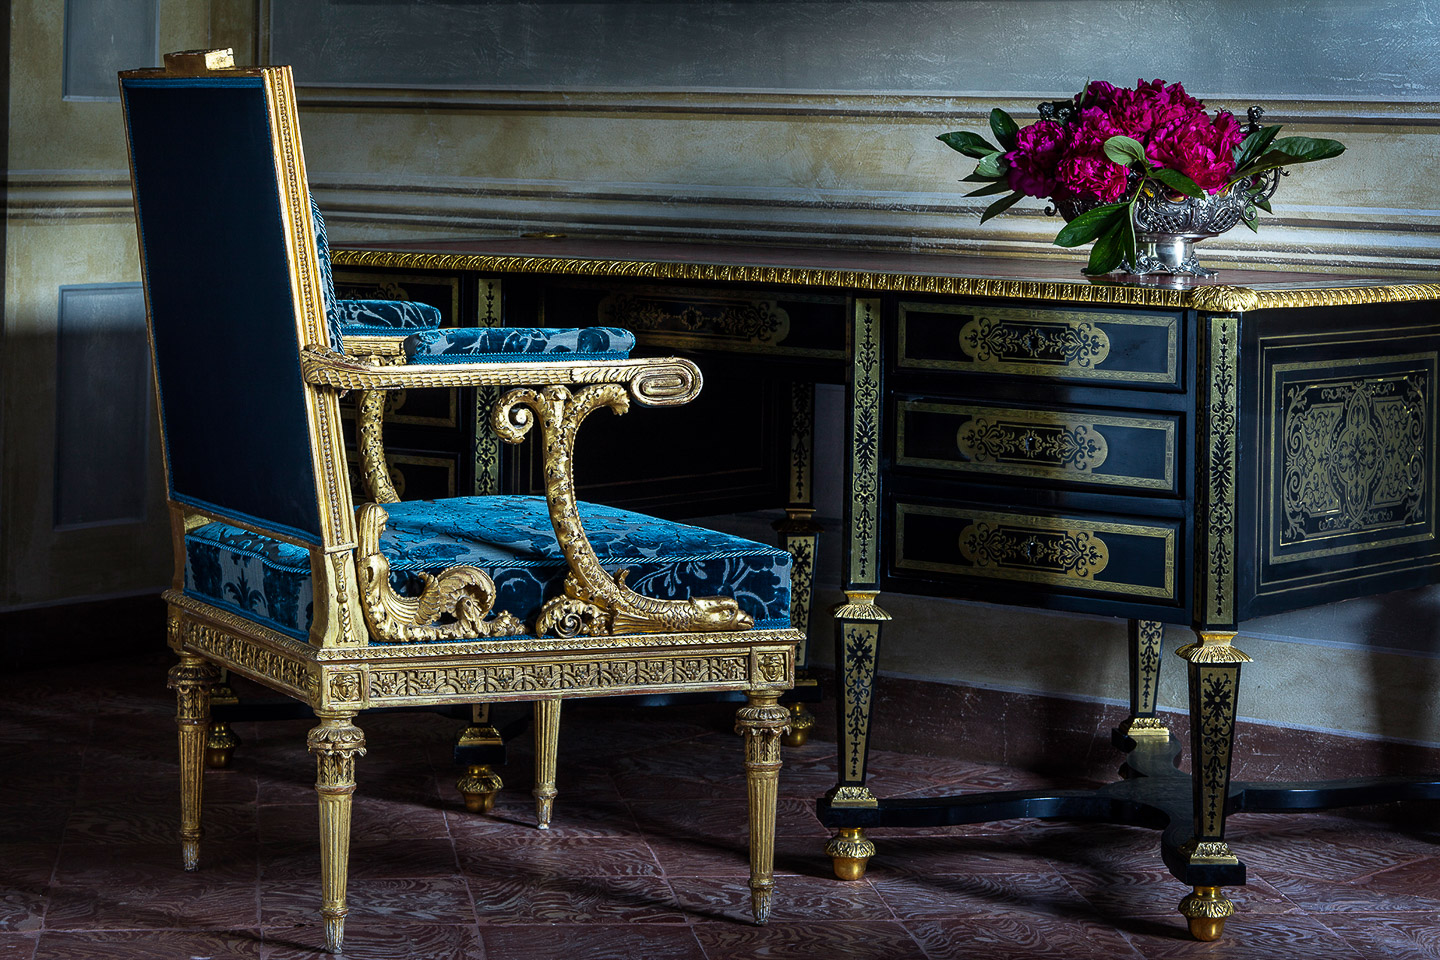 Villa Balbiano elegant lake Como property offering accommodation sumptuous interior design luxury master suite Louis XIV period desk blue chair from Habsburg royal family collection 20000VB_int